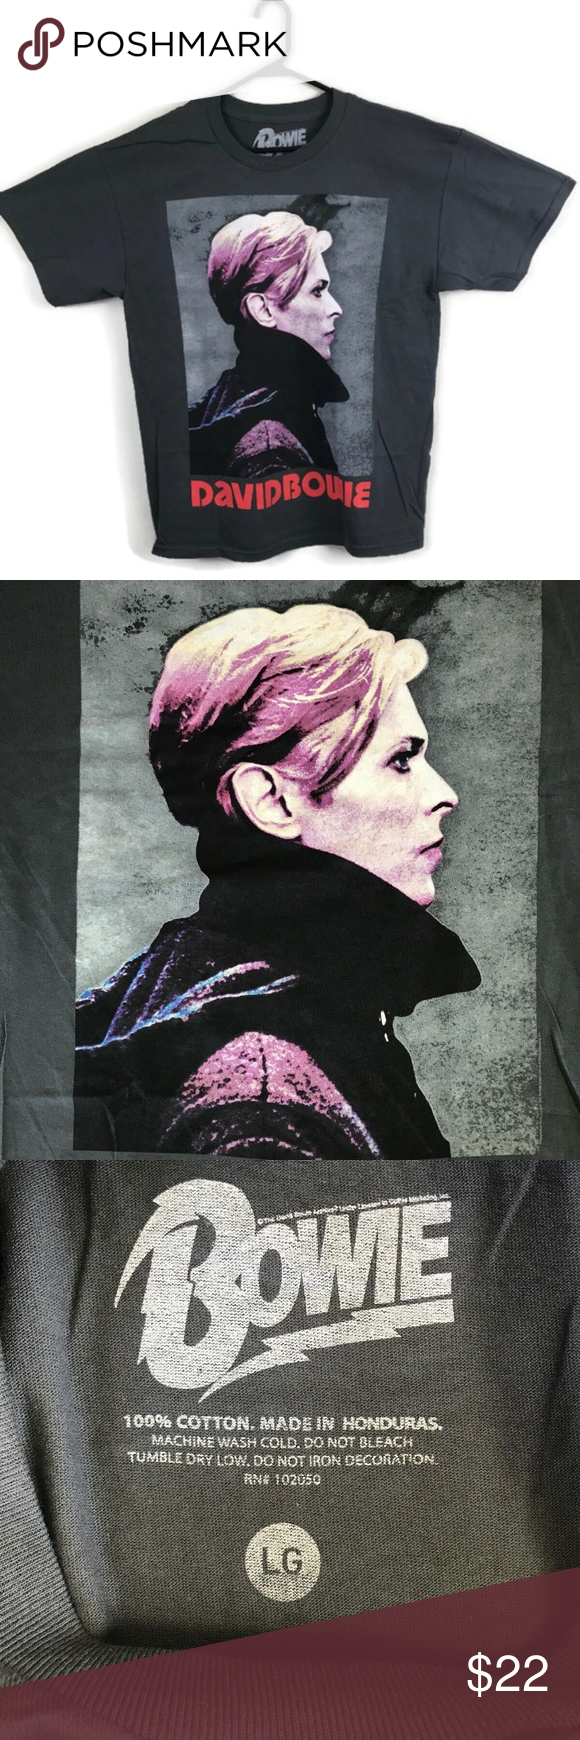 David Bowie Low Official Merch T-shirt NEW LARGE David Bowie Low Album Profile Dark Gray Large Print T-shirt  New - Sealed in bag Size Large Measurements: 22 across chest 27 length Bowie Shirts Tees - Short Sleeve #lowalbum David Bowie Low Official Merch T-shirt NEW LARGE David Bowie Low Album Profile Dark Gray Large Print T-shirt  New - Sealed in bag Size Large Measurements: 22 across chest 27 length Bowie Shirts Tees - Short Sleeve #lowalbum